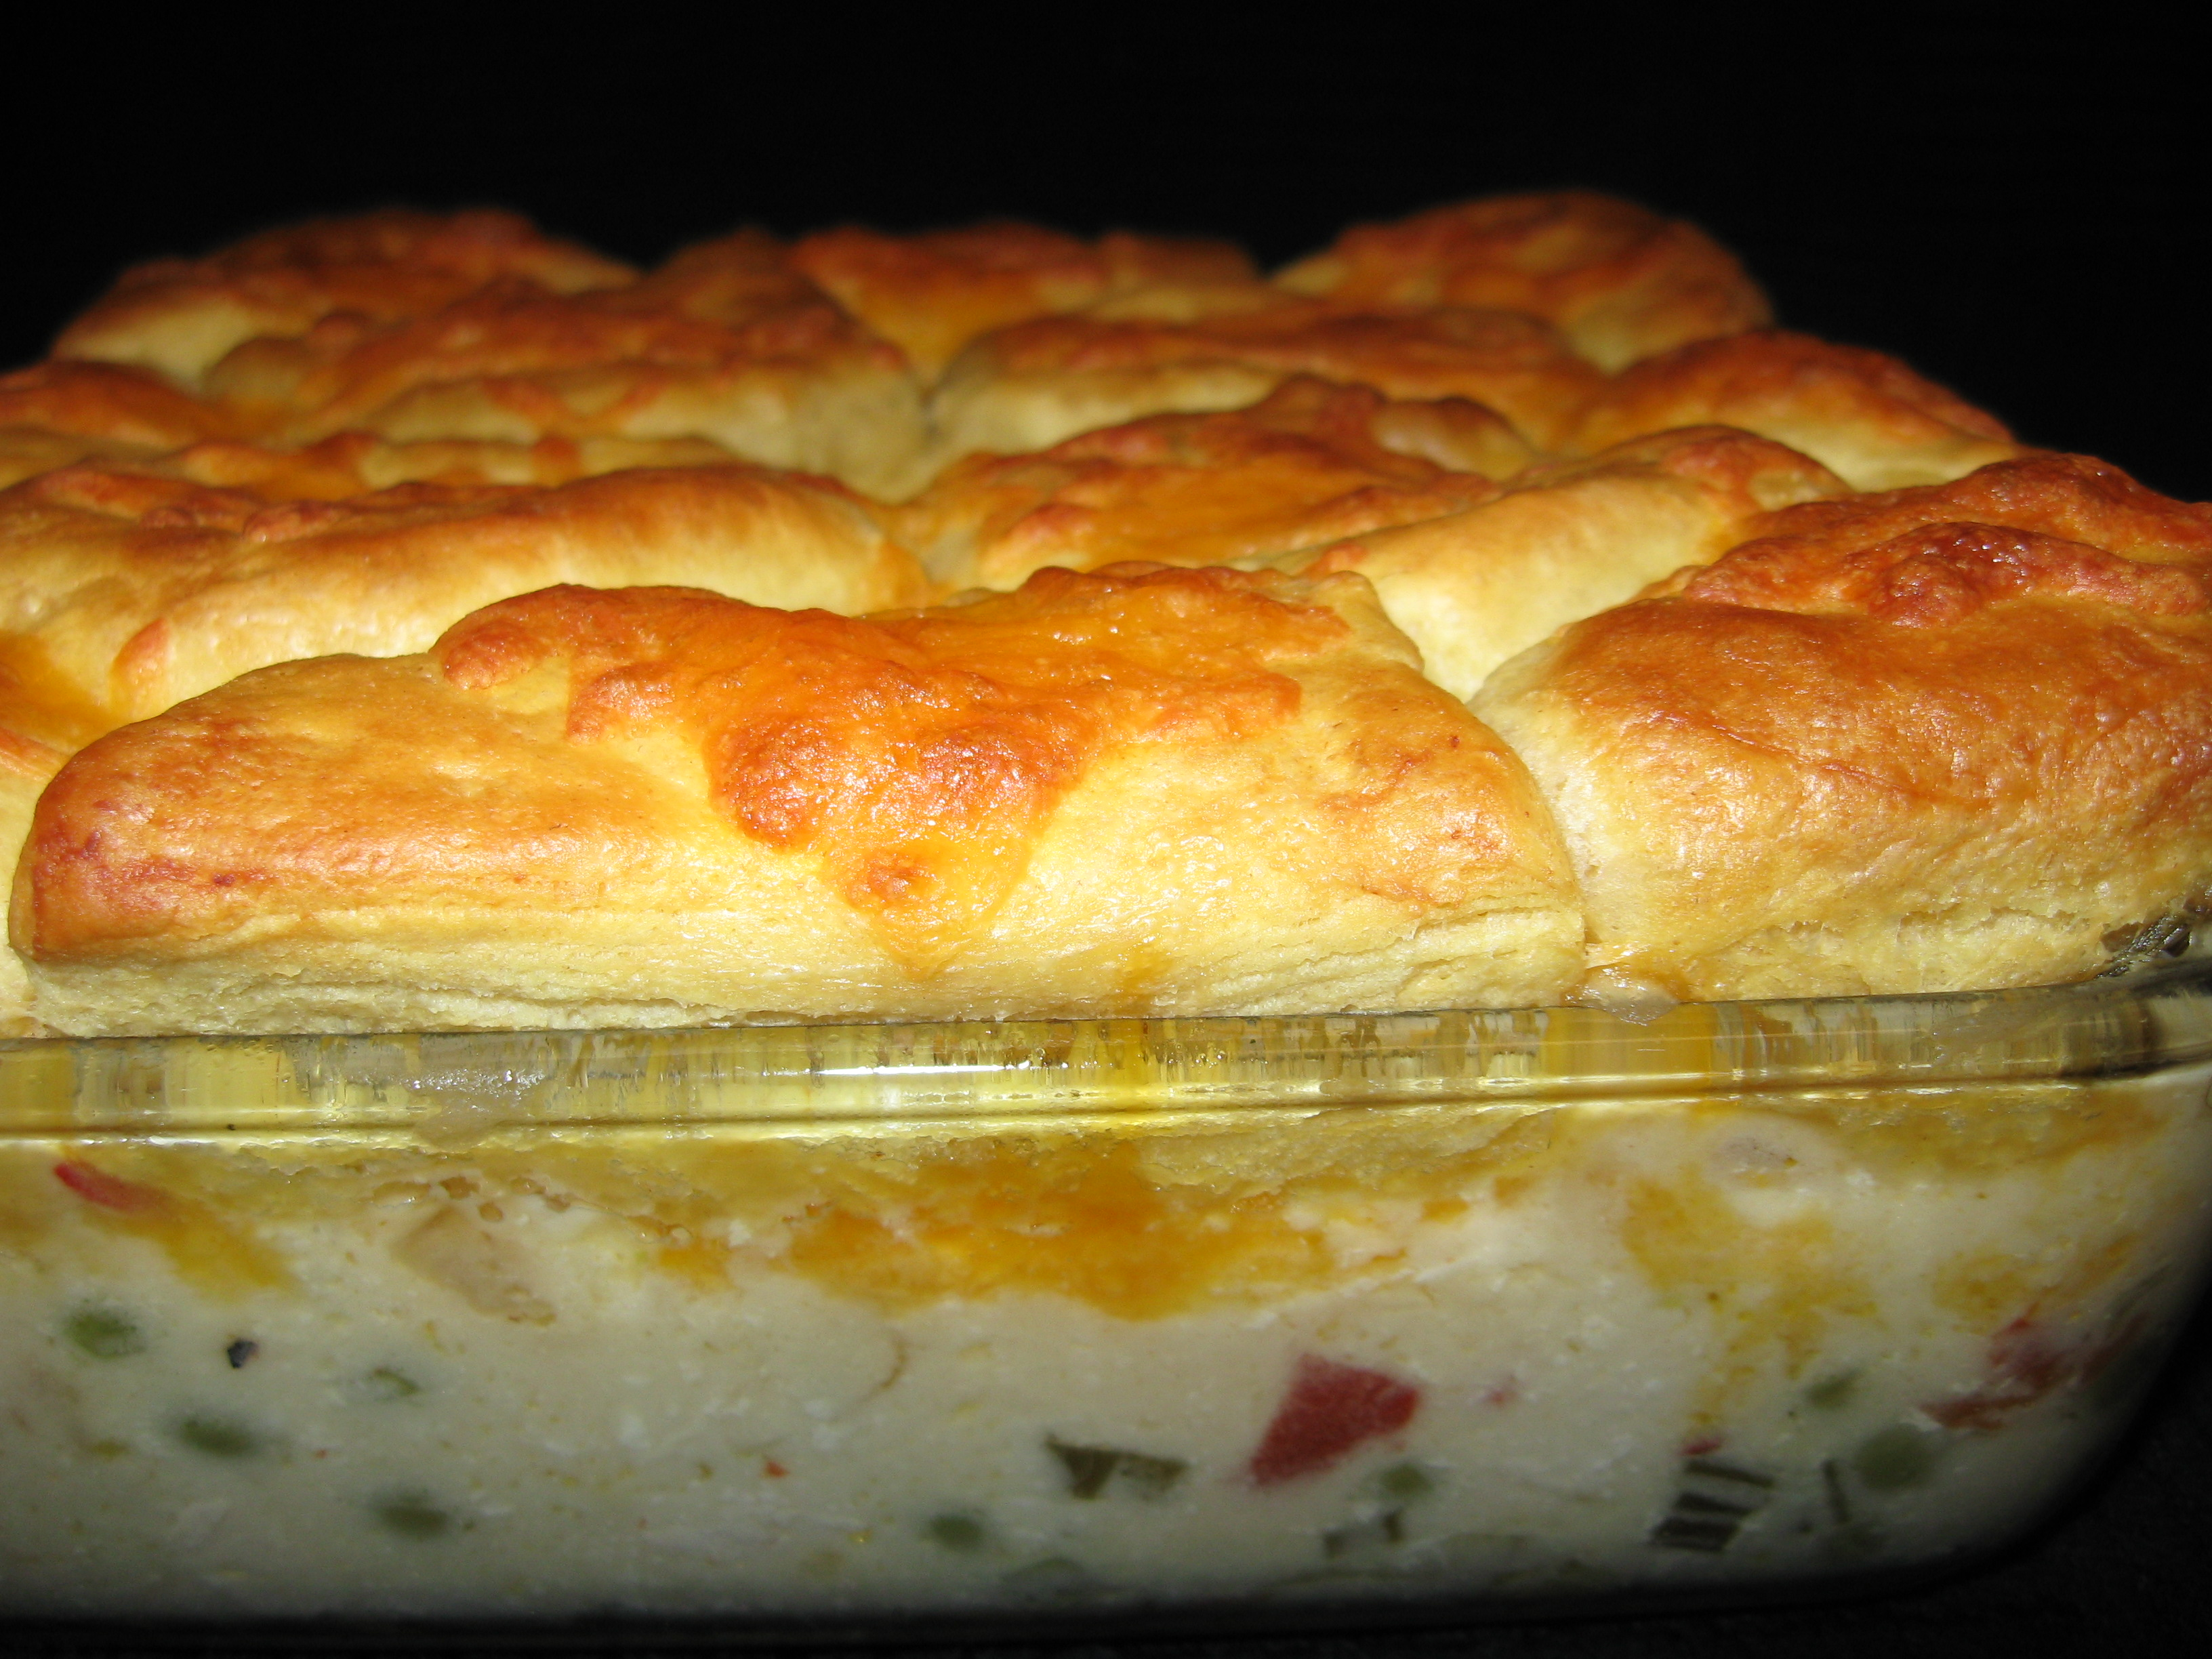 Potsie's Creamed Chicken and Biscuits Casserole